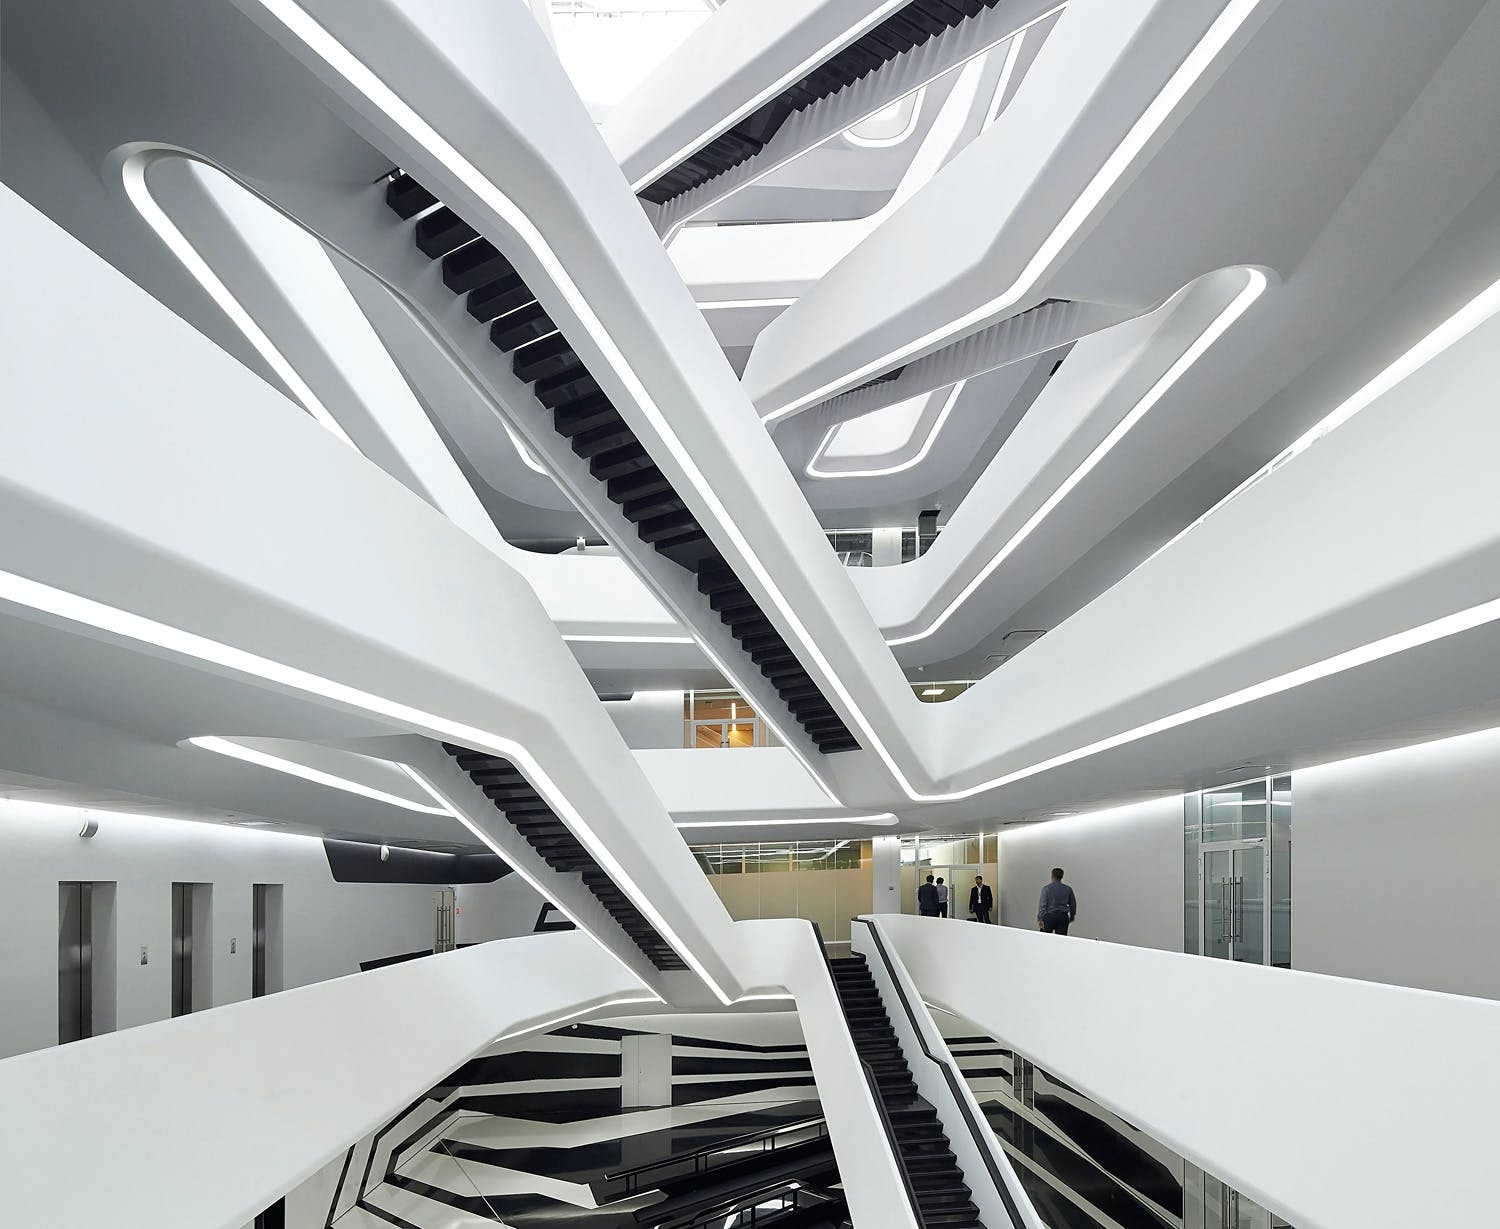 Zaha hadid grntuch ernst davidson rafailidis among 2016 best non public project commercial winner zaha hadid architects uk dominion office building moscow russia malvernweather Gallery